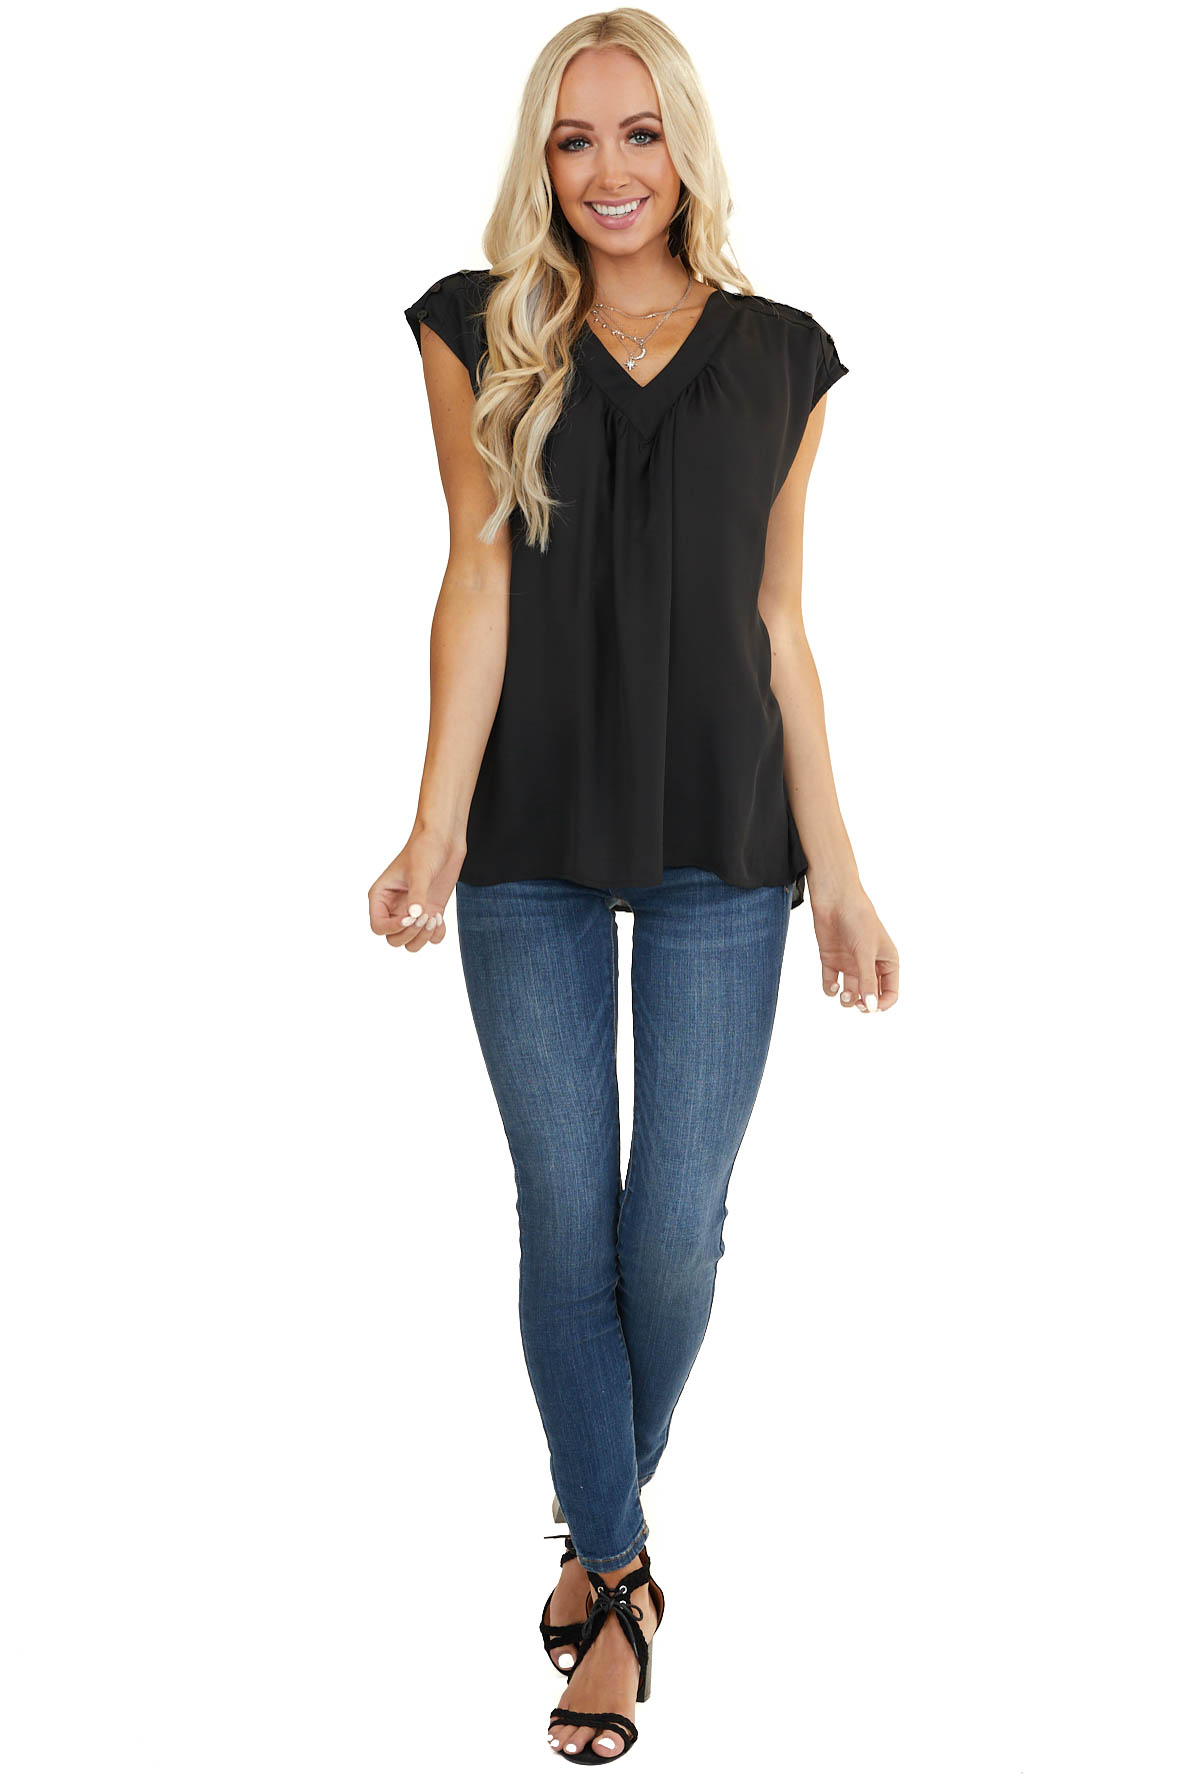 Black Short Sleeve V Neck Woven Top with Button Details